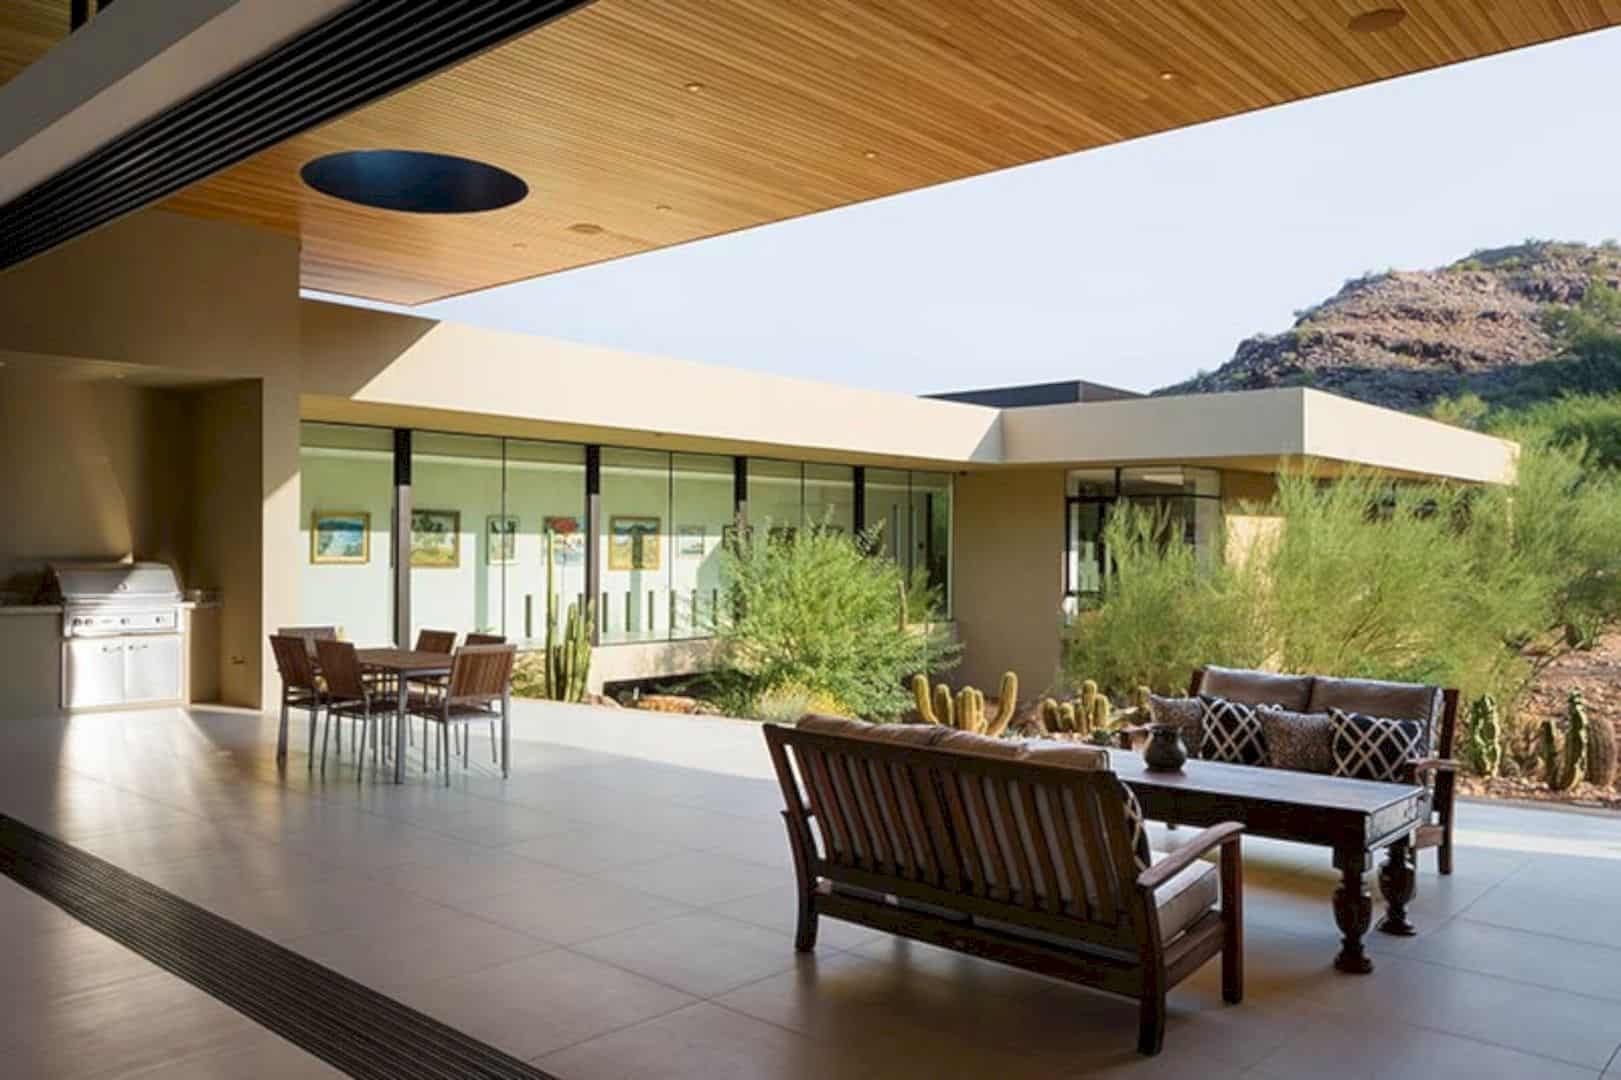 Desert Wash Residence: Modern Desert Home Defining Paradise Valley's Topographical Feature